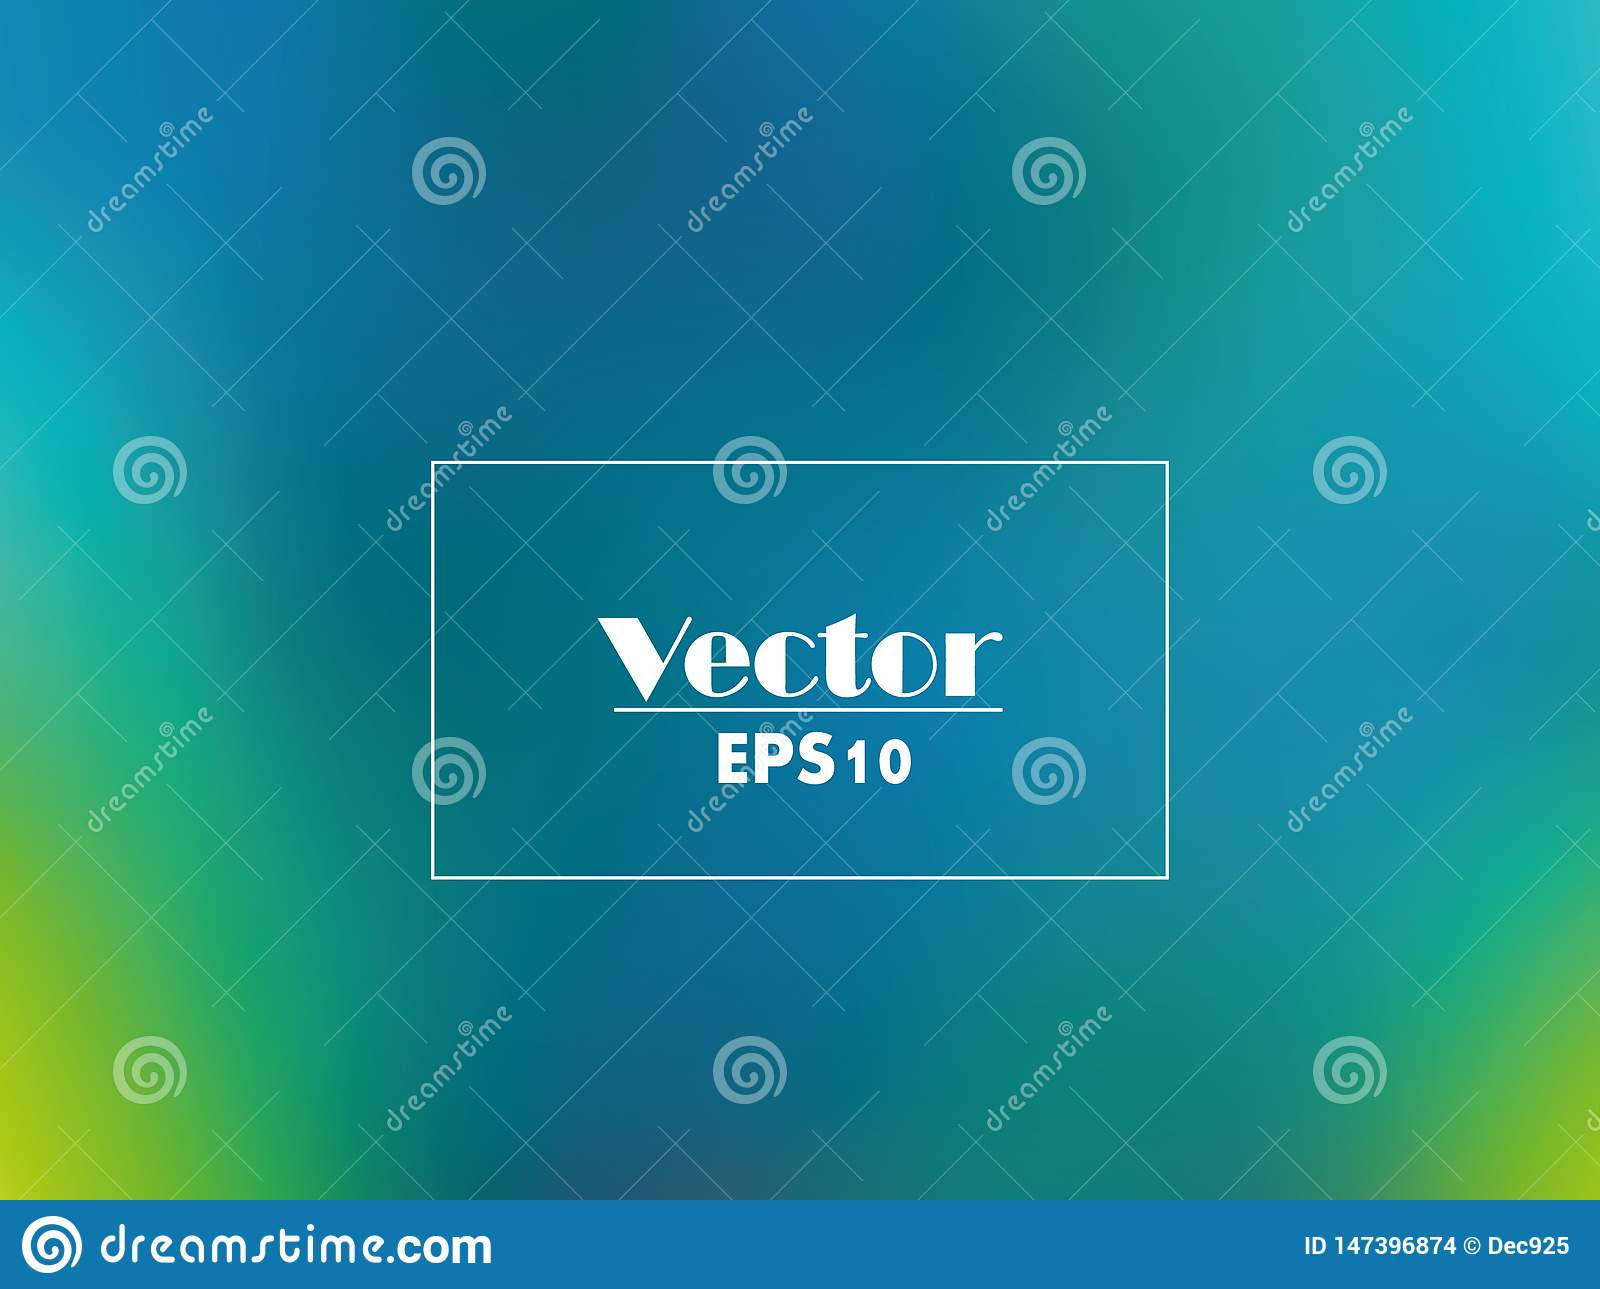 Vector vivid blurred emerald green gradient abstract background